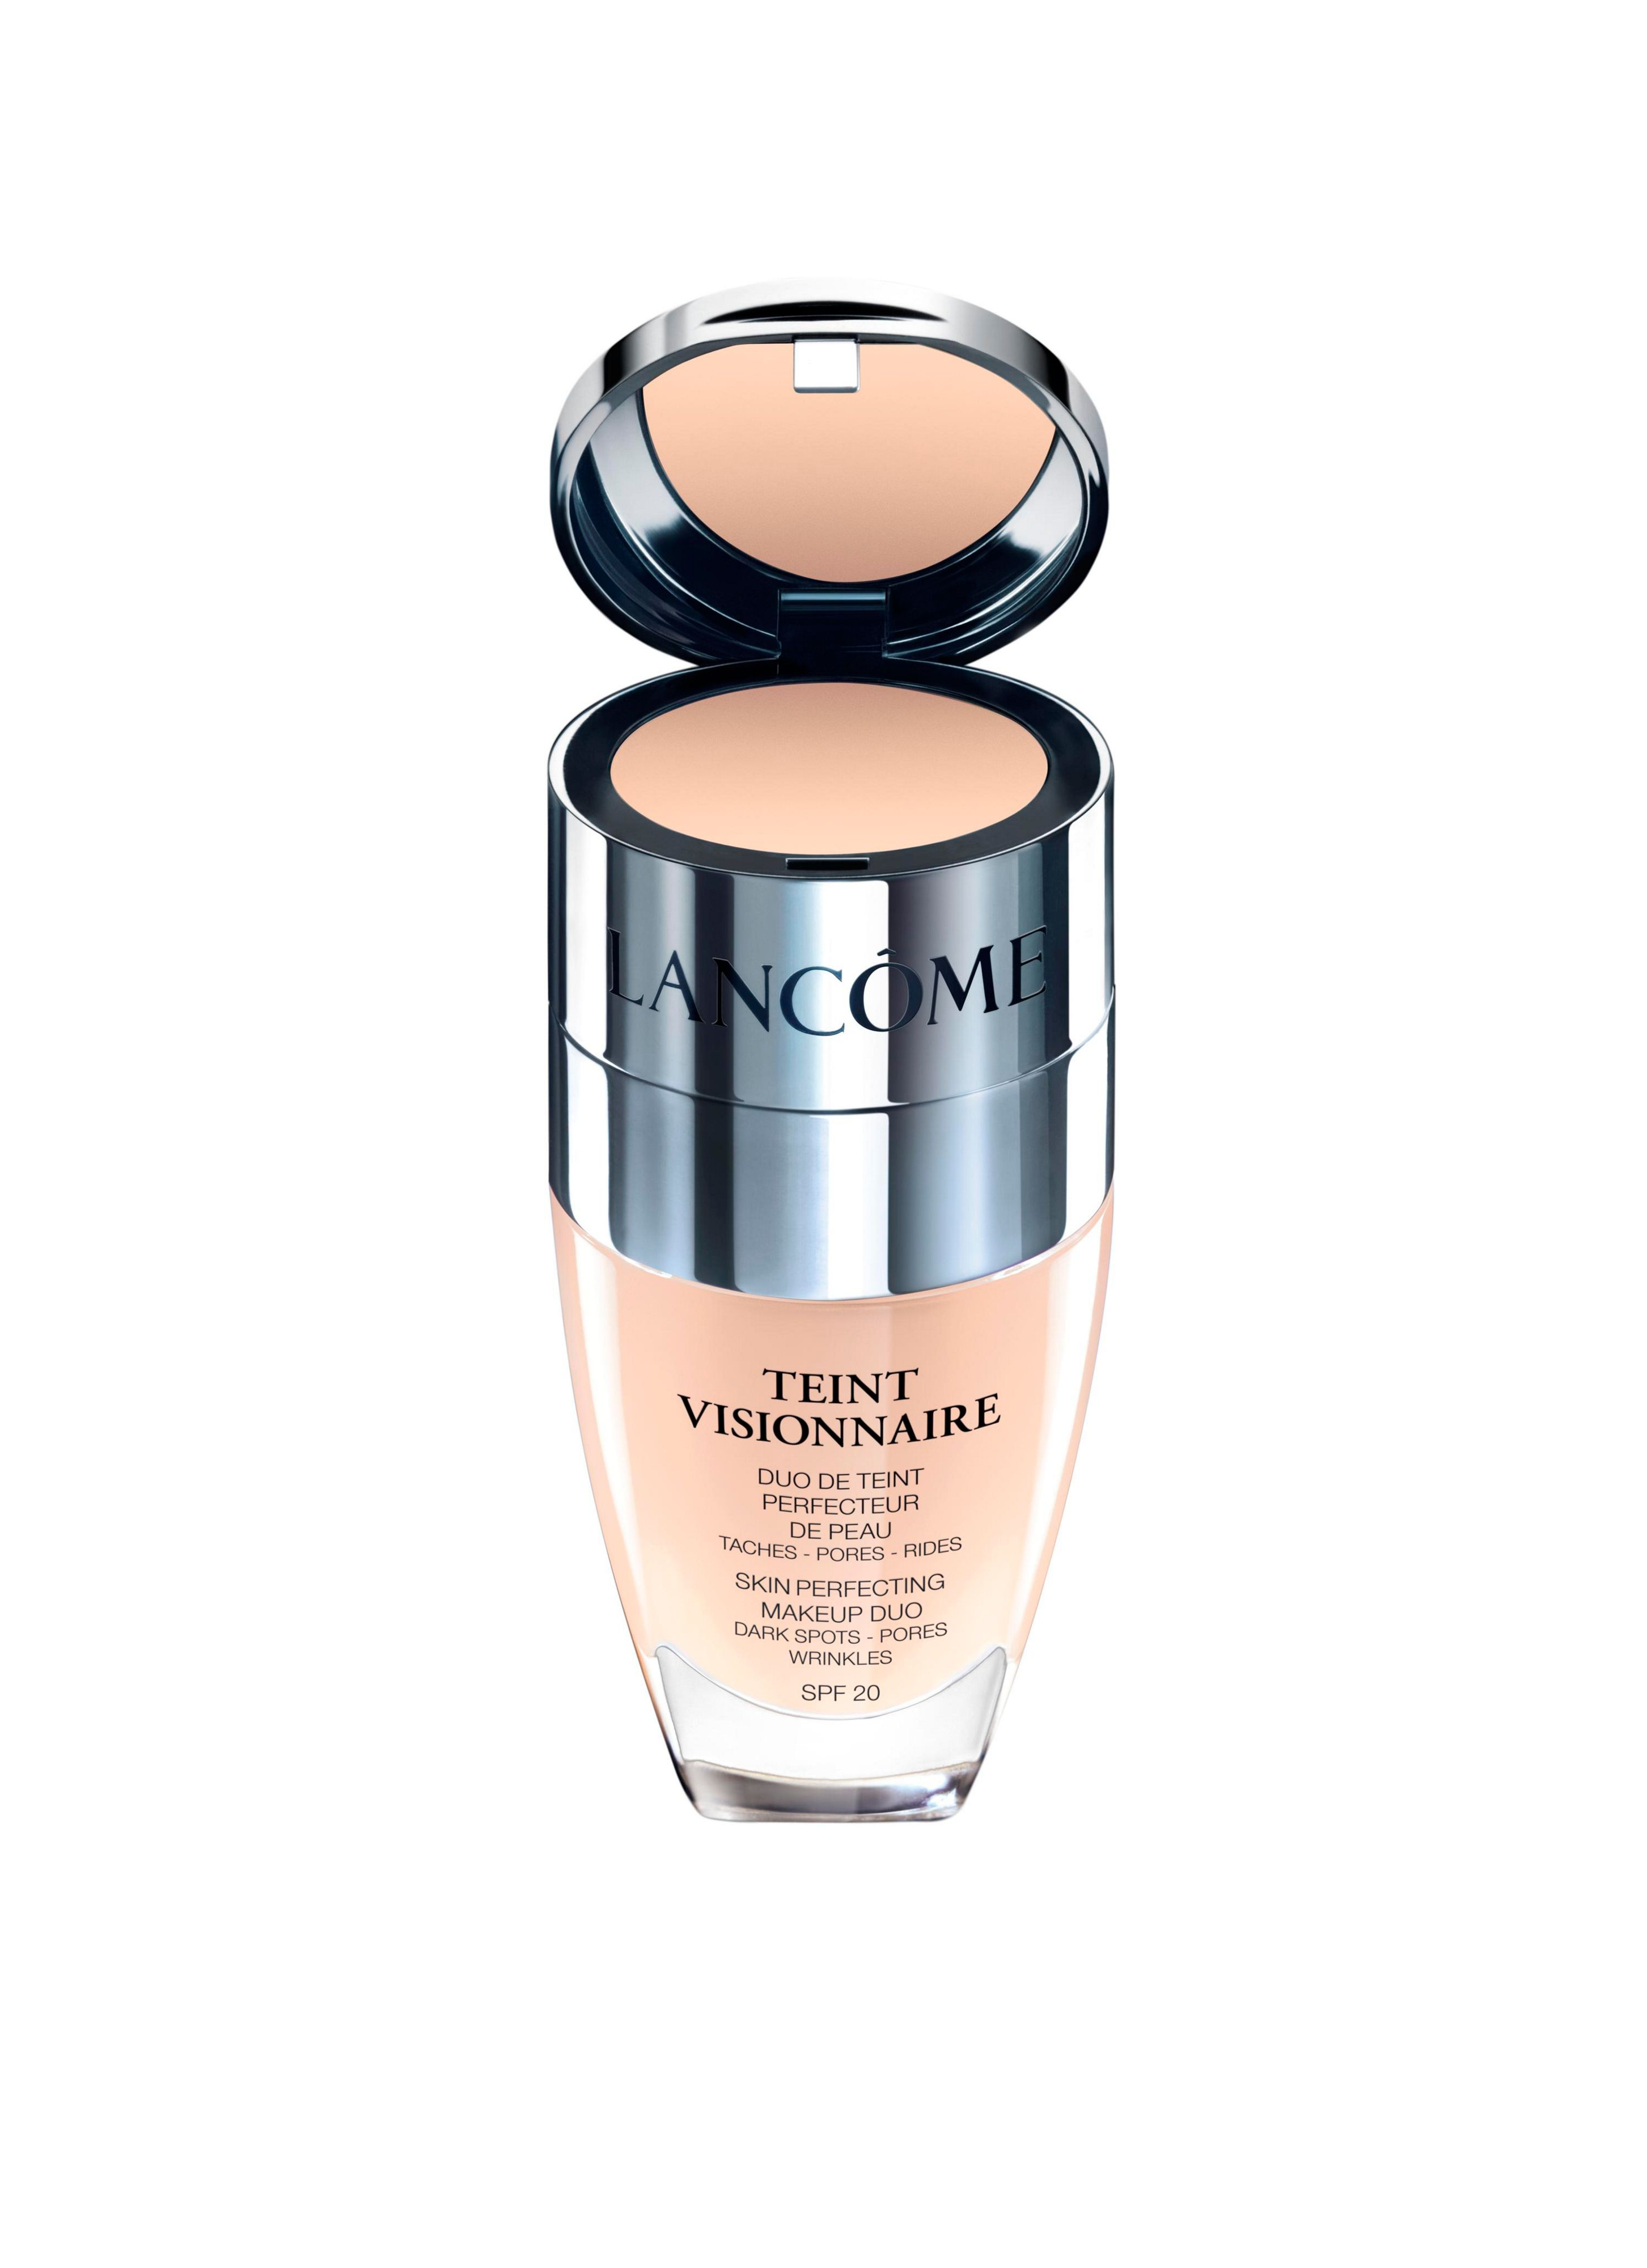 Teint Visionnaire Skin Perfecting Makeup Duo